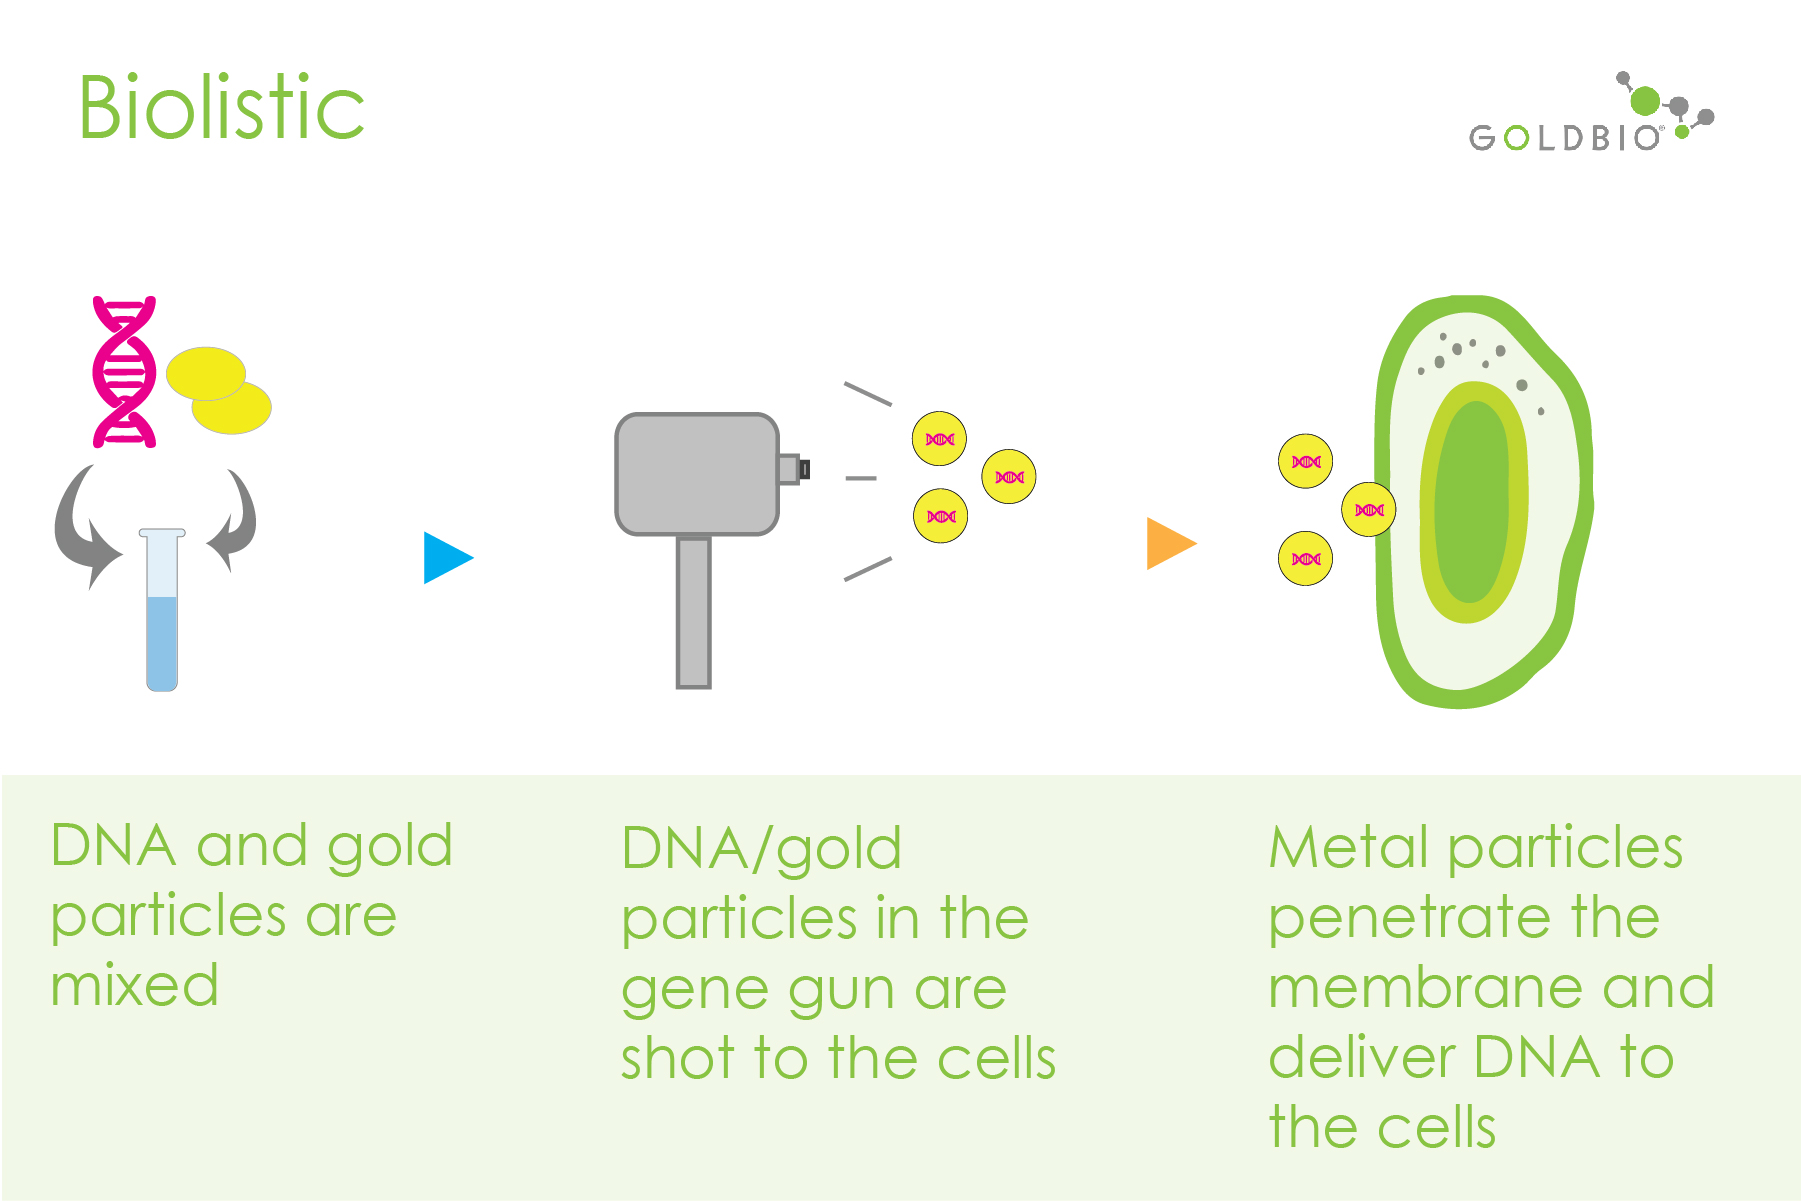 Biolistic-mediated transformation process illustratrion showing the mixing of DNA and nano particles, a gene gun that shots DNA into cells, and the penetration of DNA into the plant cell membrane. Biolistic-mediated transformation can use intact-plant tissue.